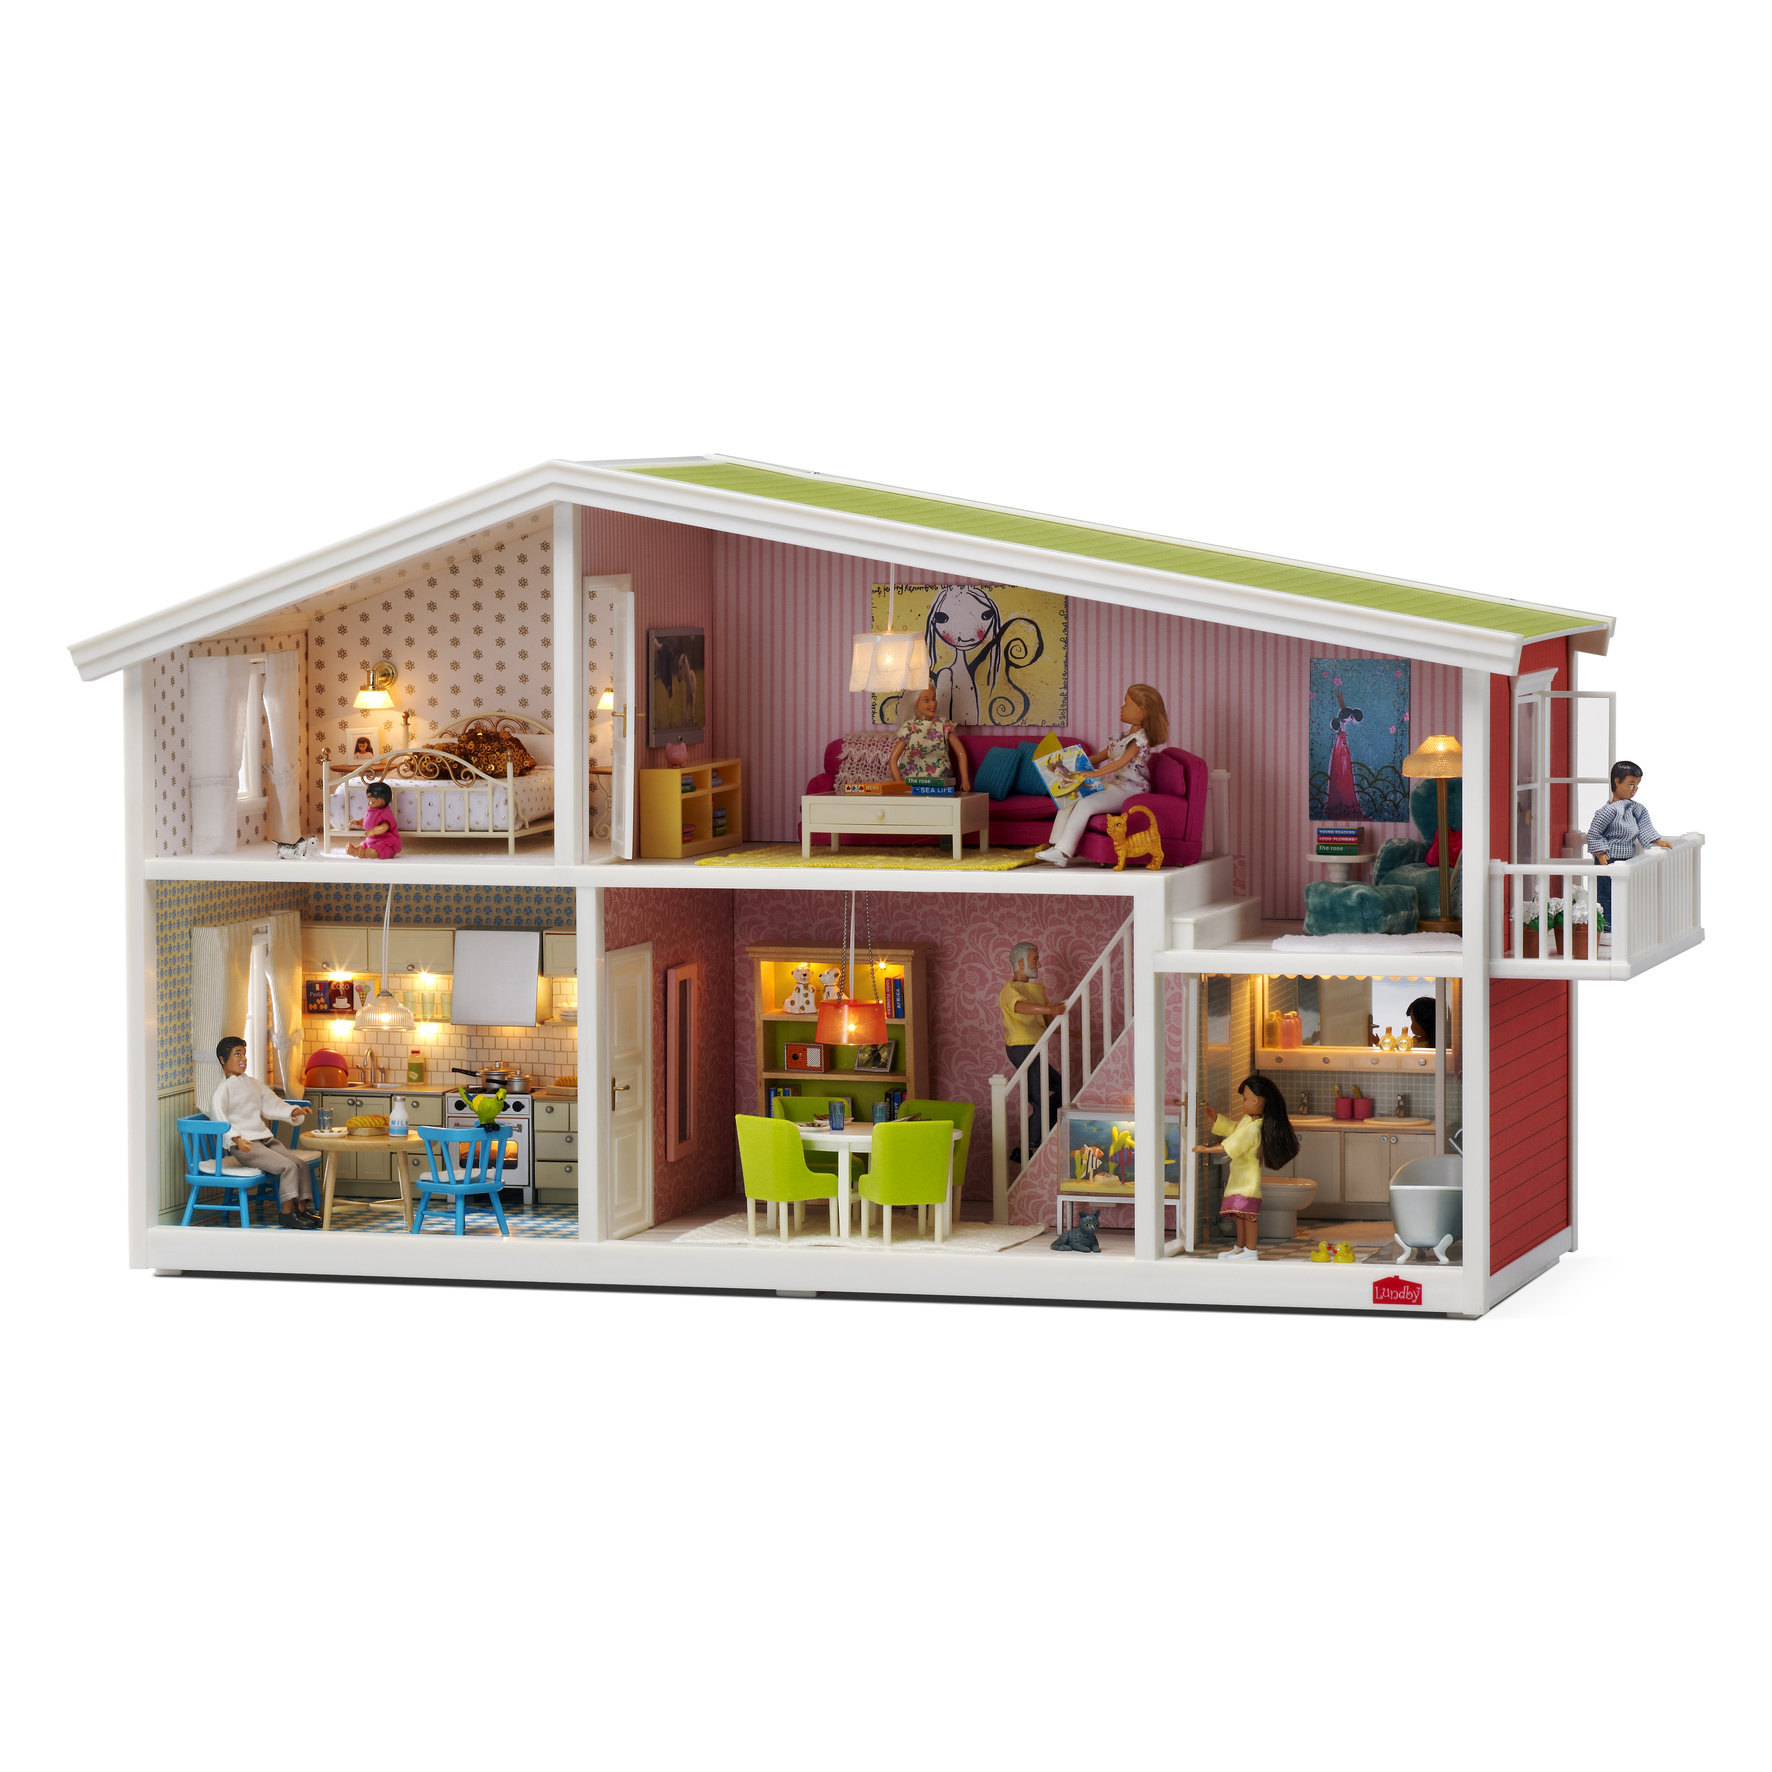 Modern Doll Houses Auto Electrical Wiring Diagram For Dolls House